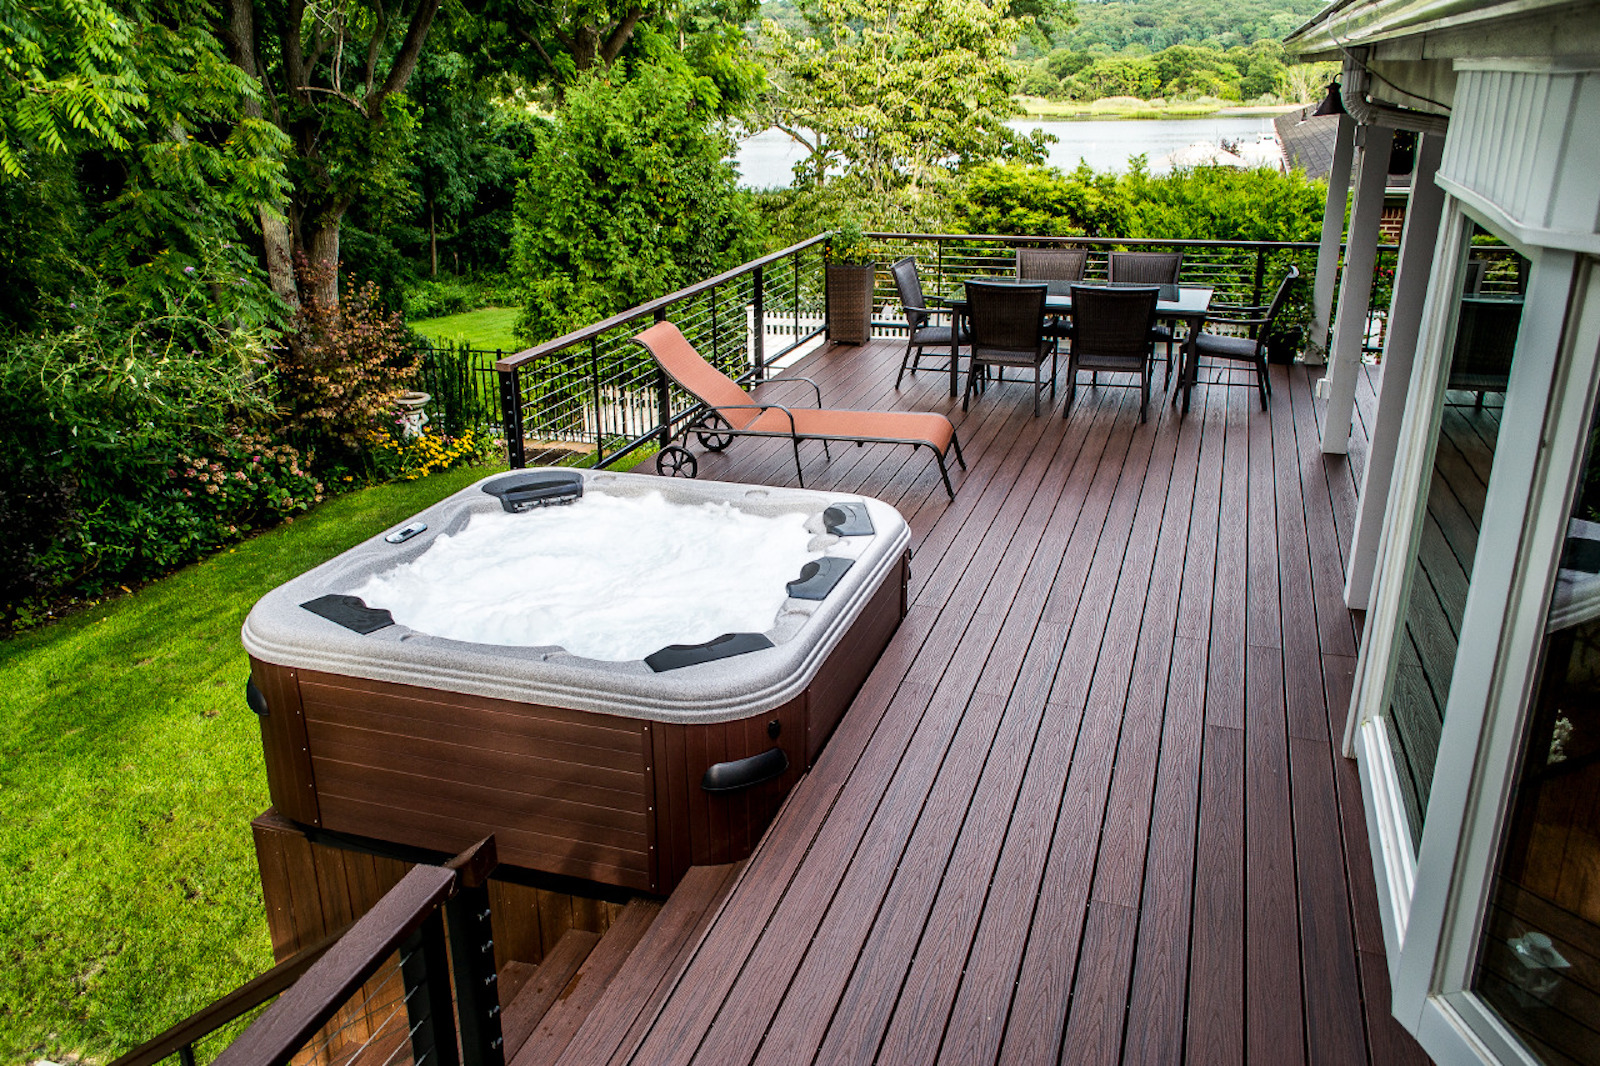 Spa And Deck | Spa Installation | Spa Decks | In Deck Spa on Deck And Hot Tub Ideas  id=62831